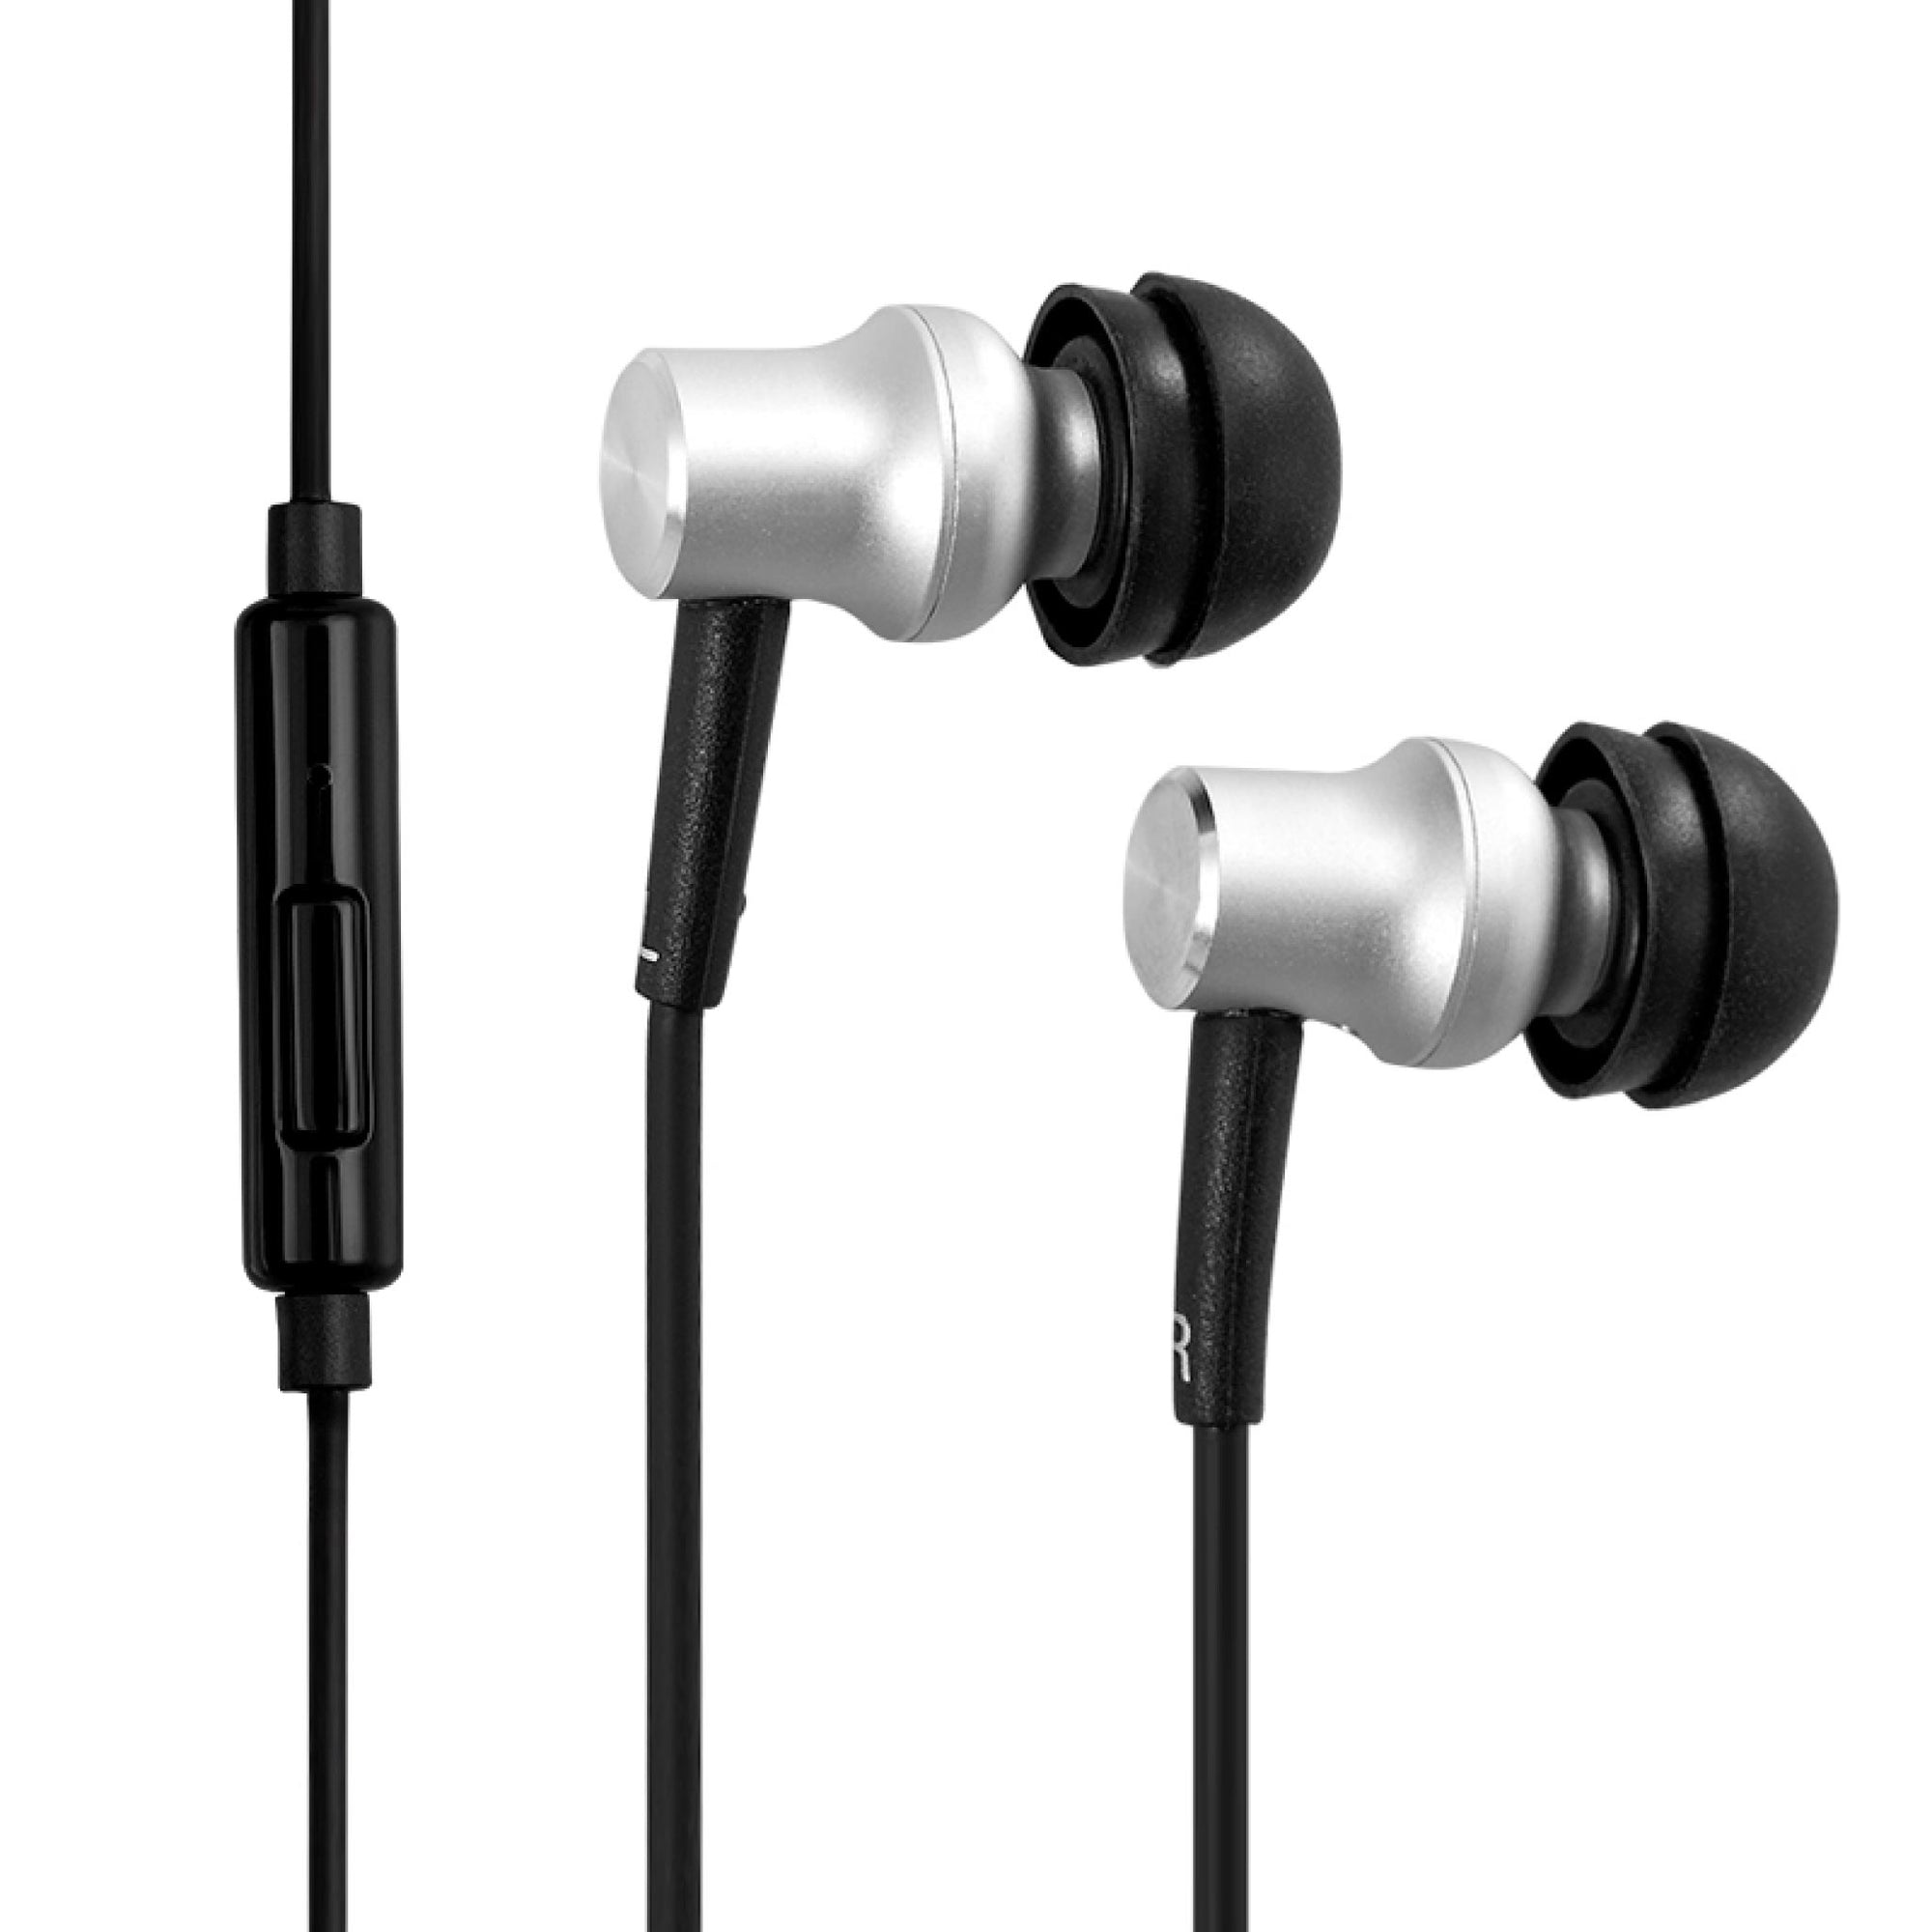 Hifiman RE400a In-Line Control Earphone for Android - Gears For Ears